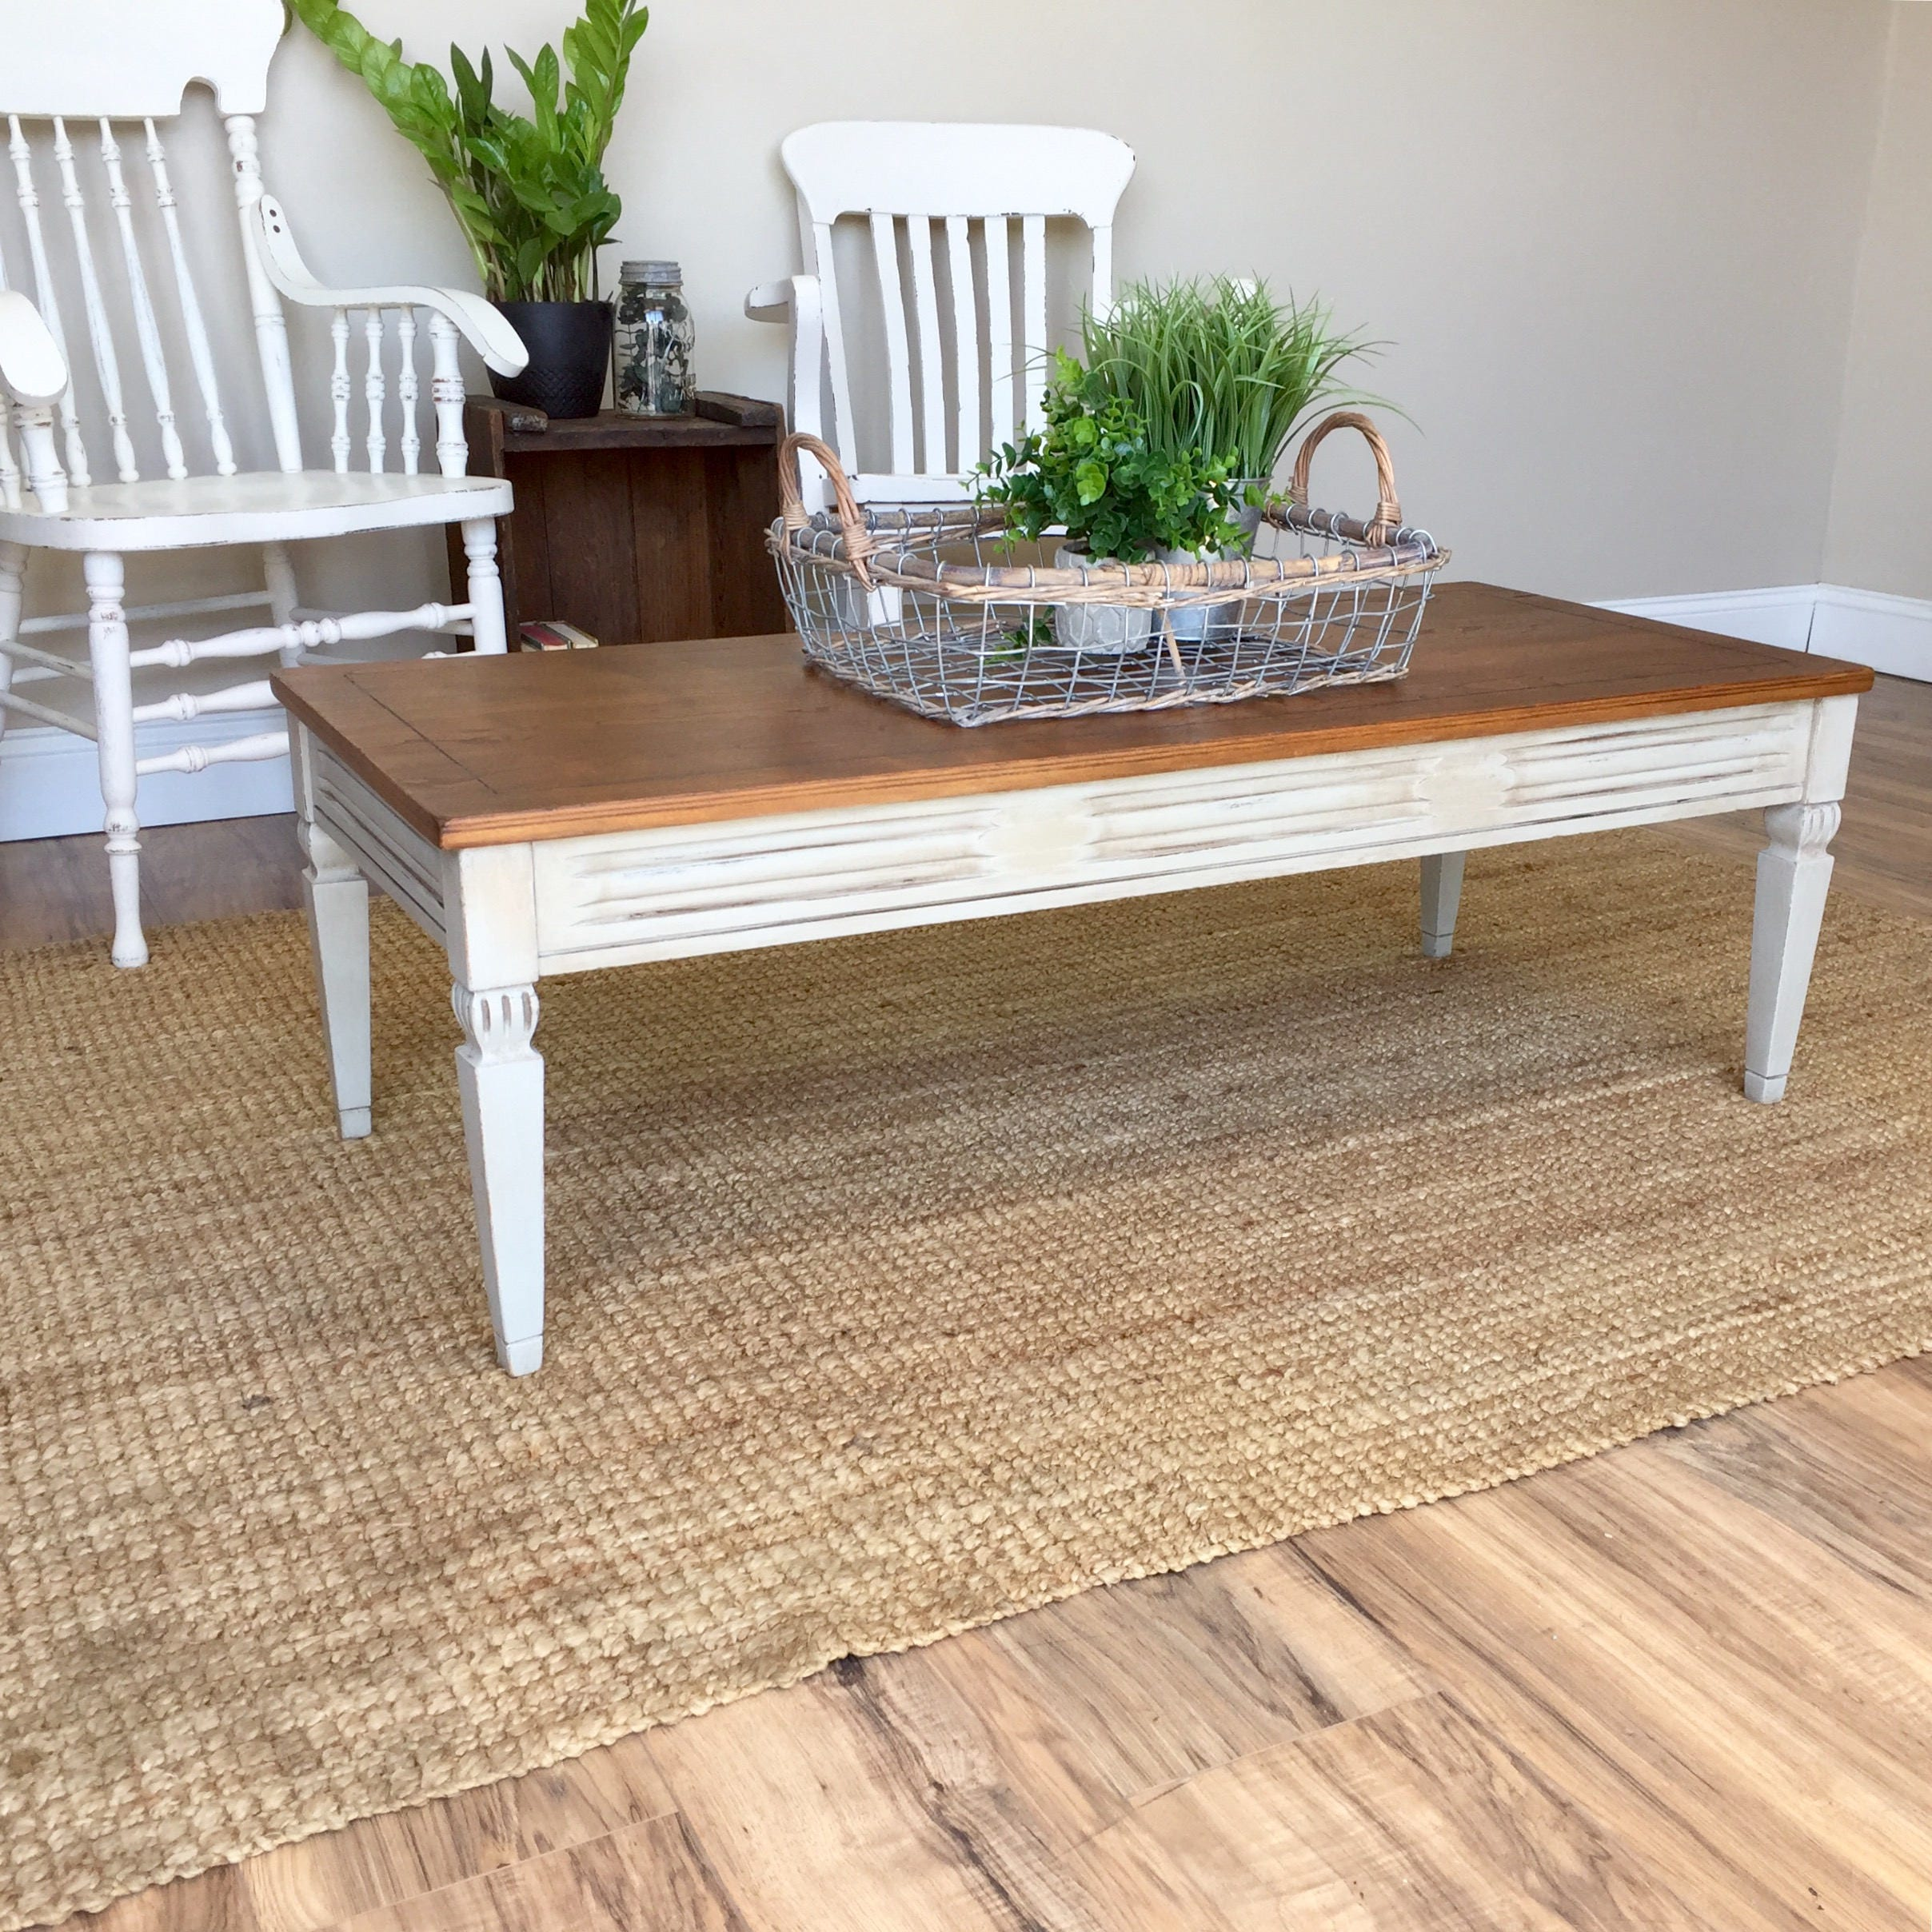 Decorating With Distressed Furniture: Small White Coffee Table